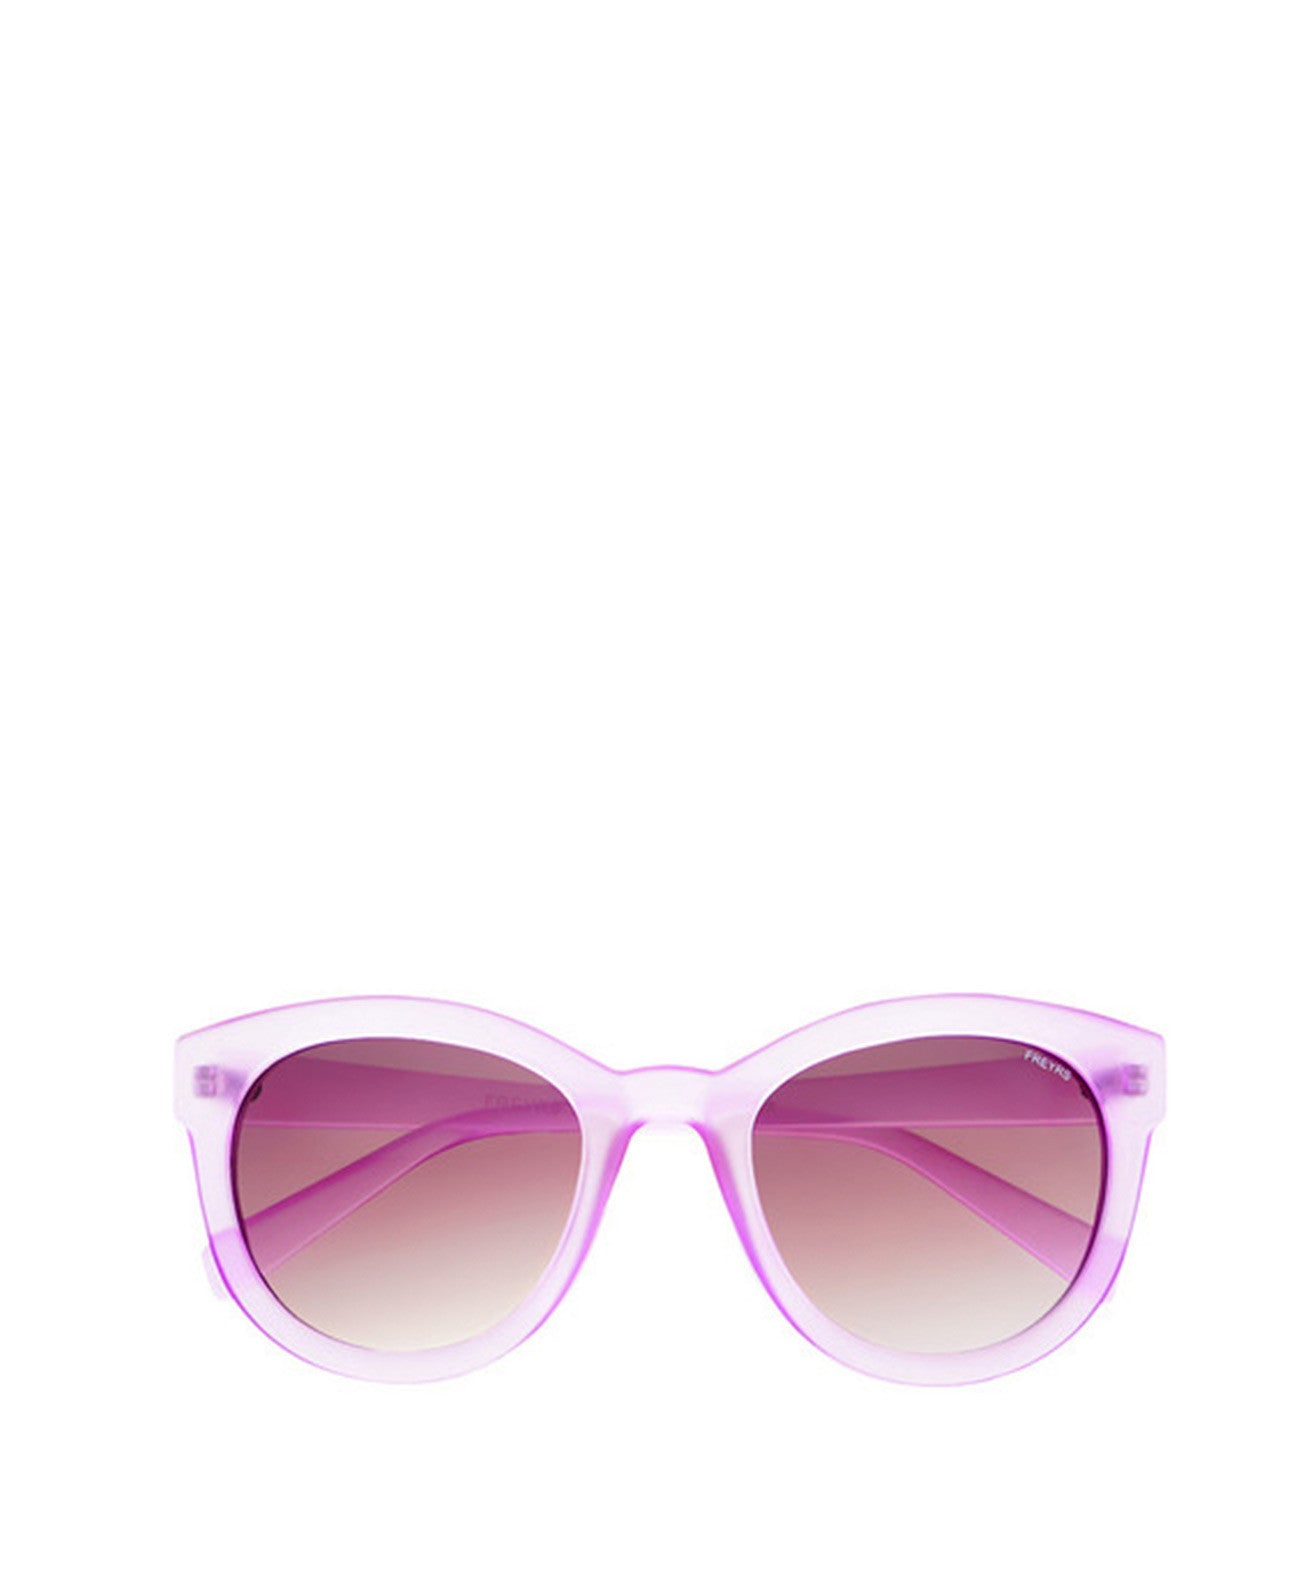 Alice Cat Eye Sunglasses - Koko & Palenki